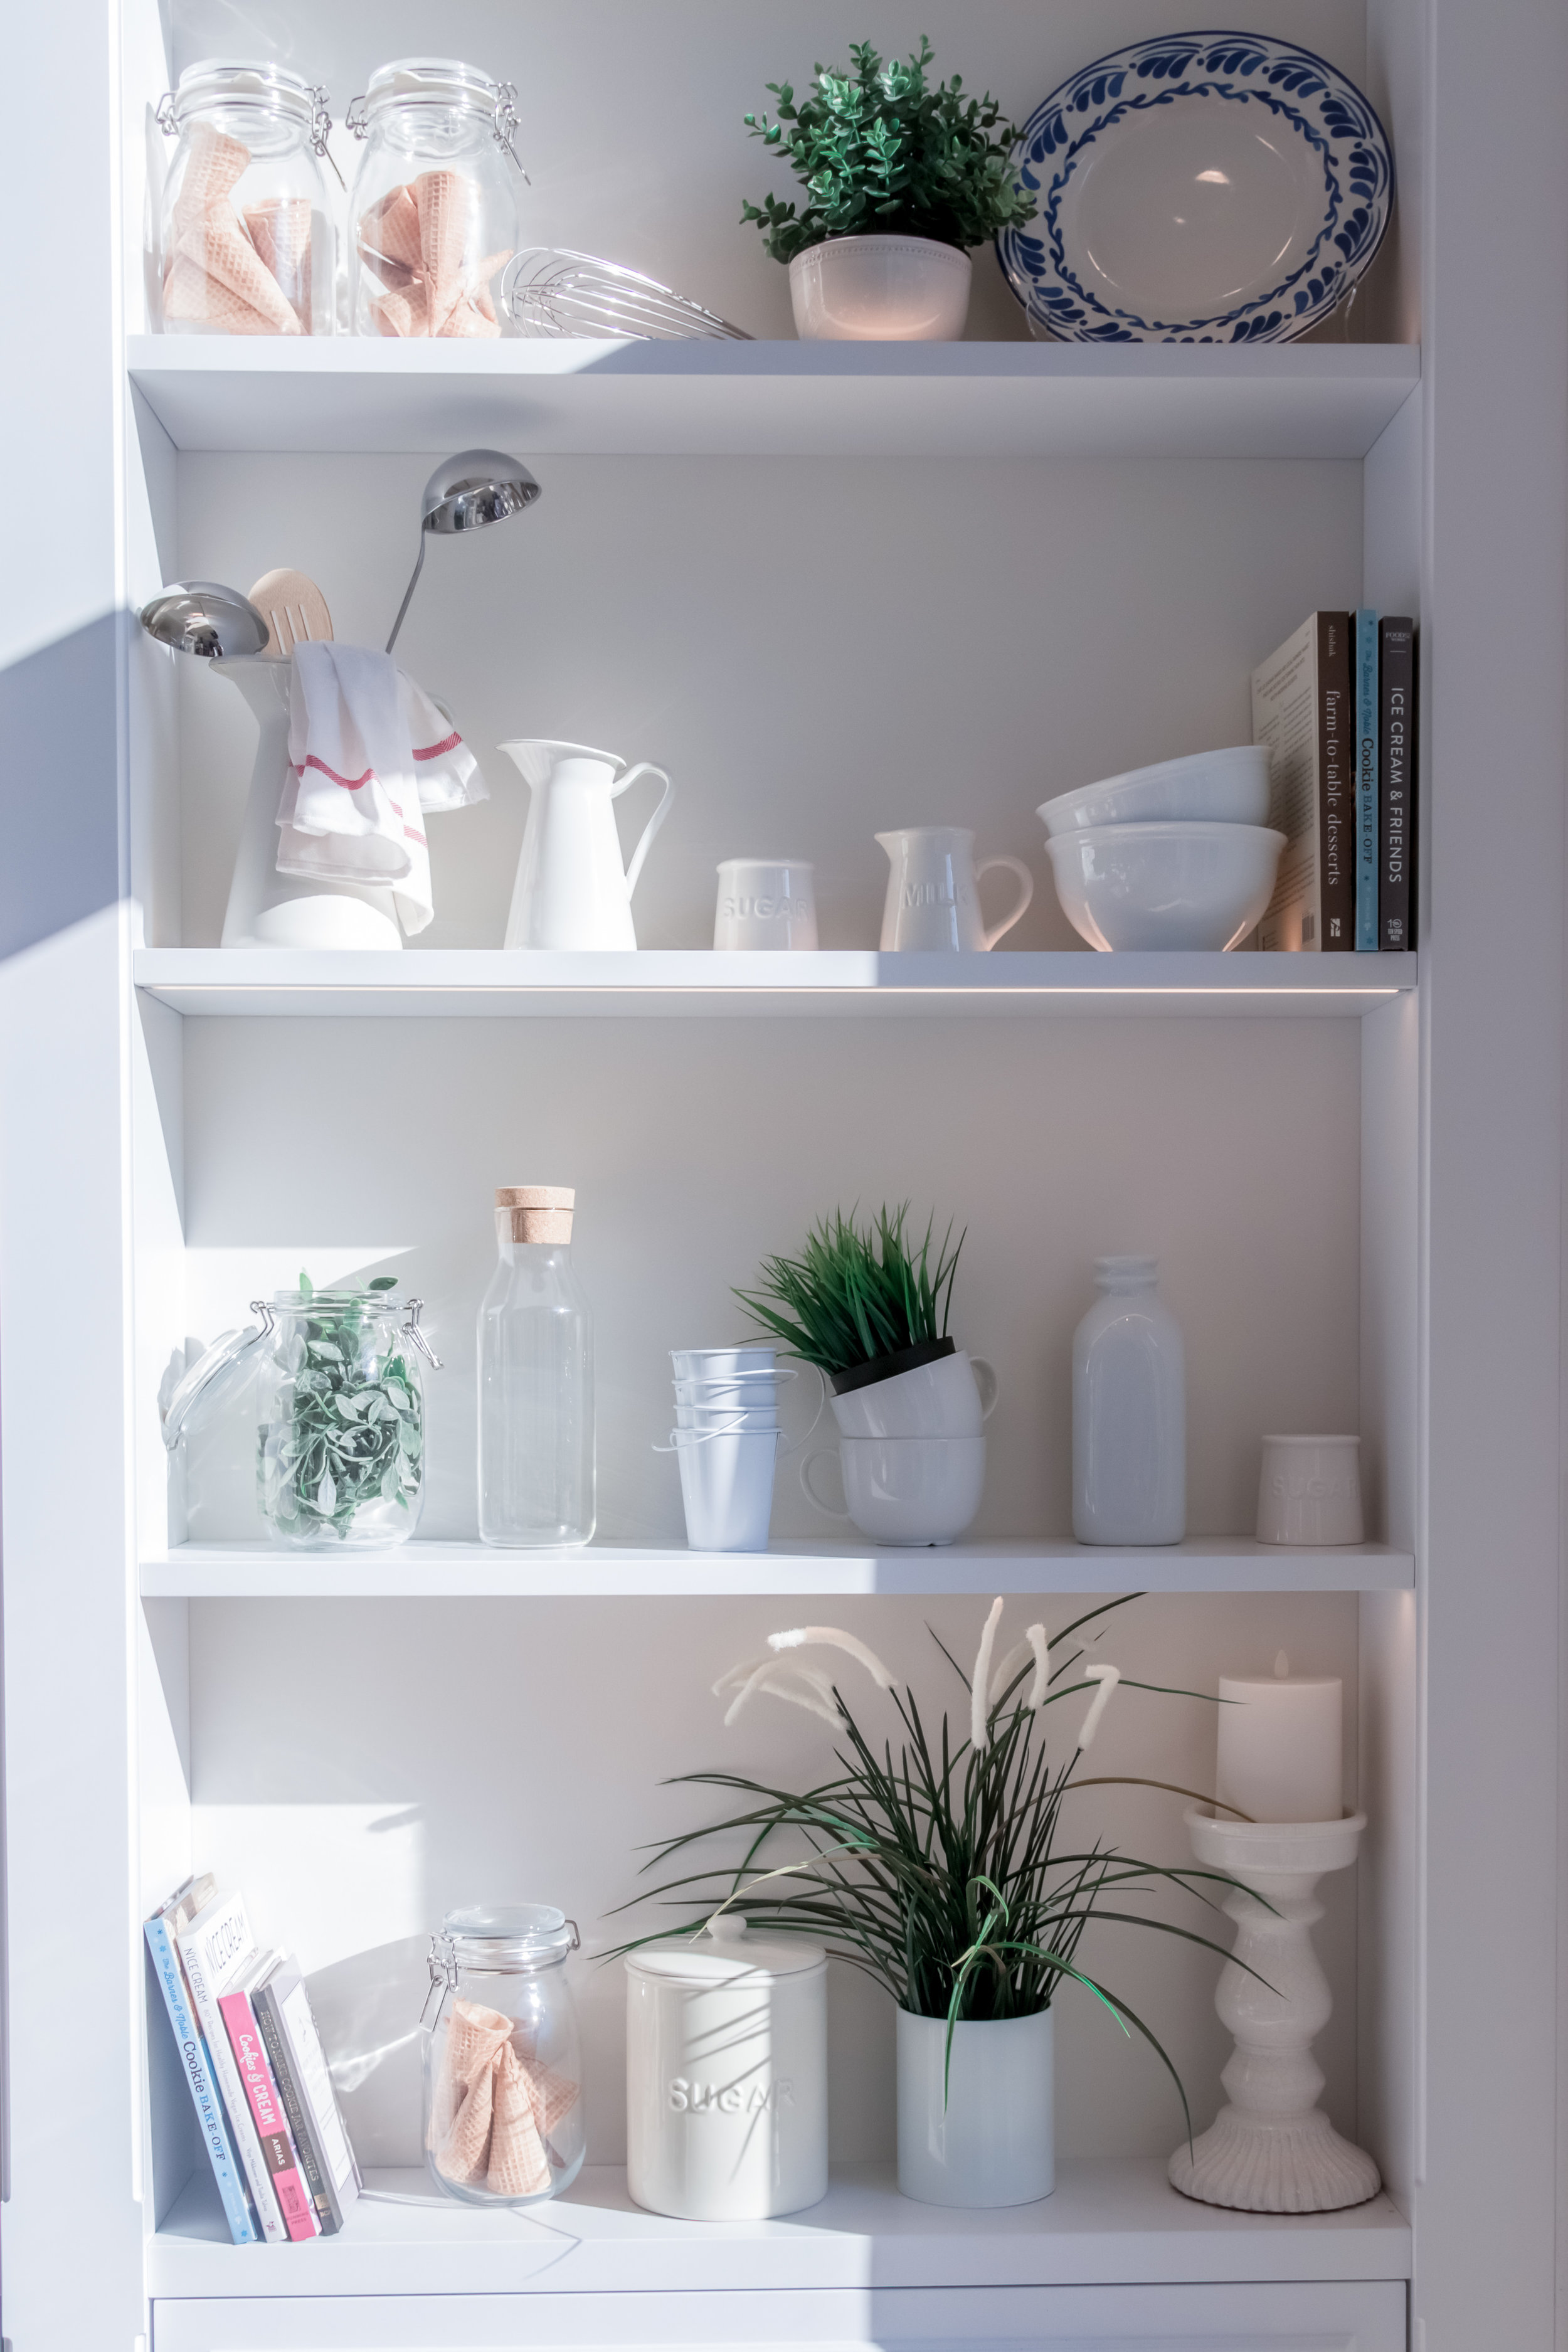 pantry with shelves and jars stacked with food